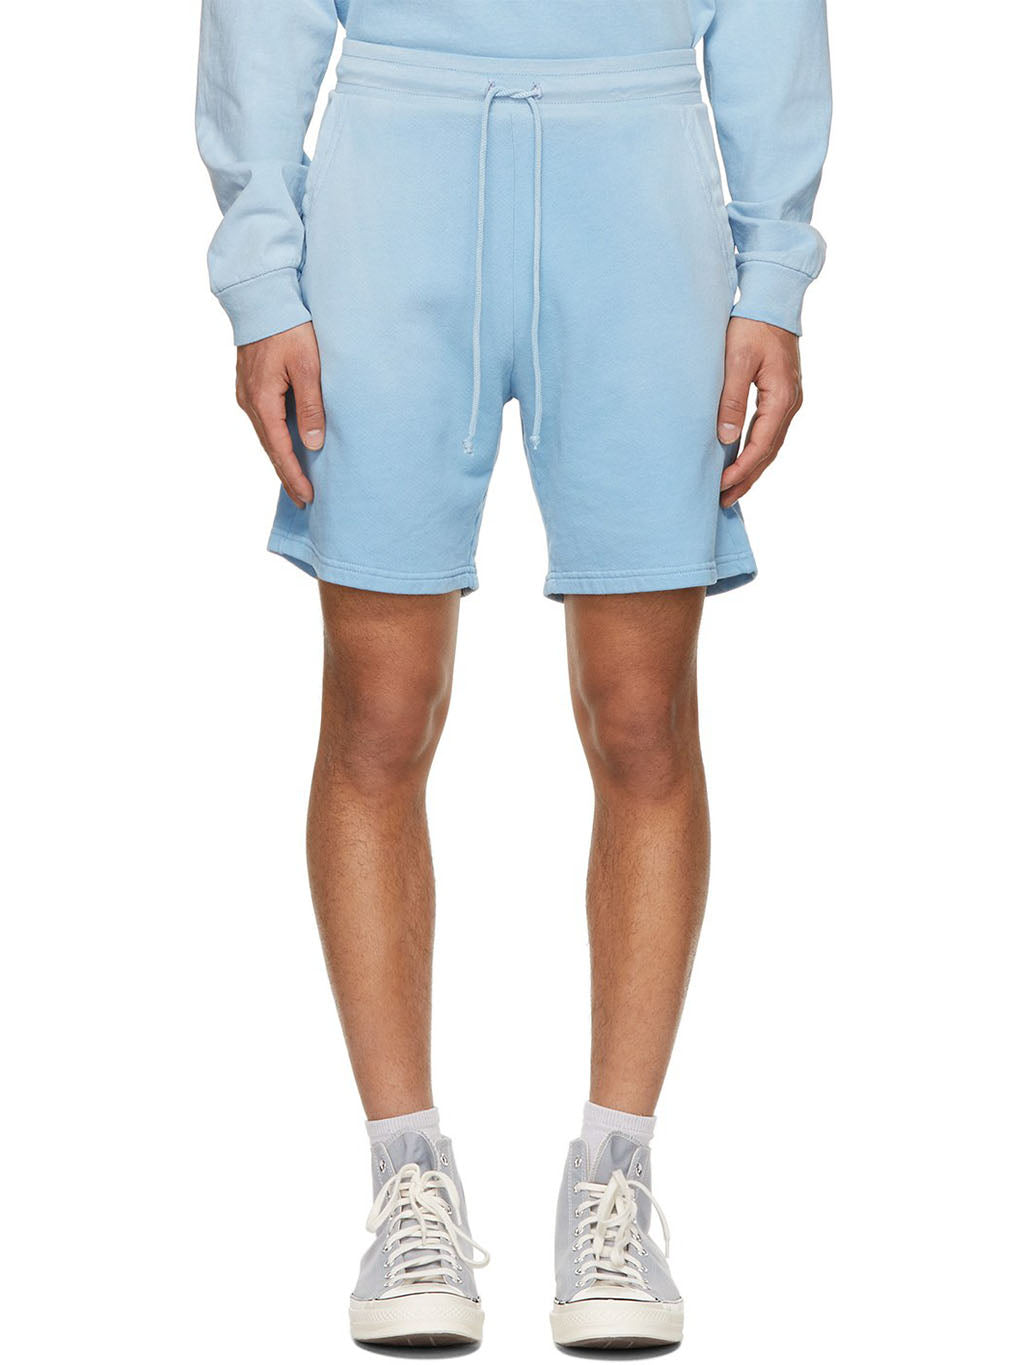 Stratus Exposure Shorts